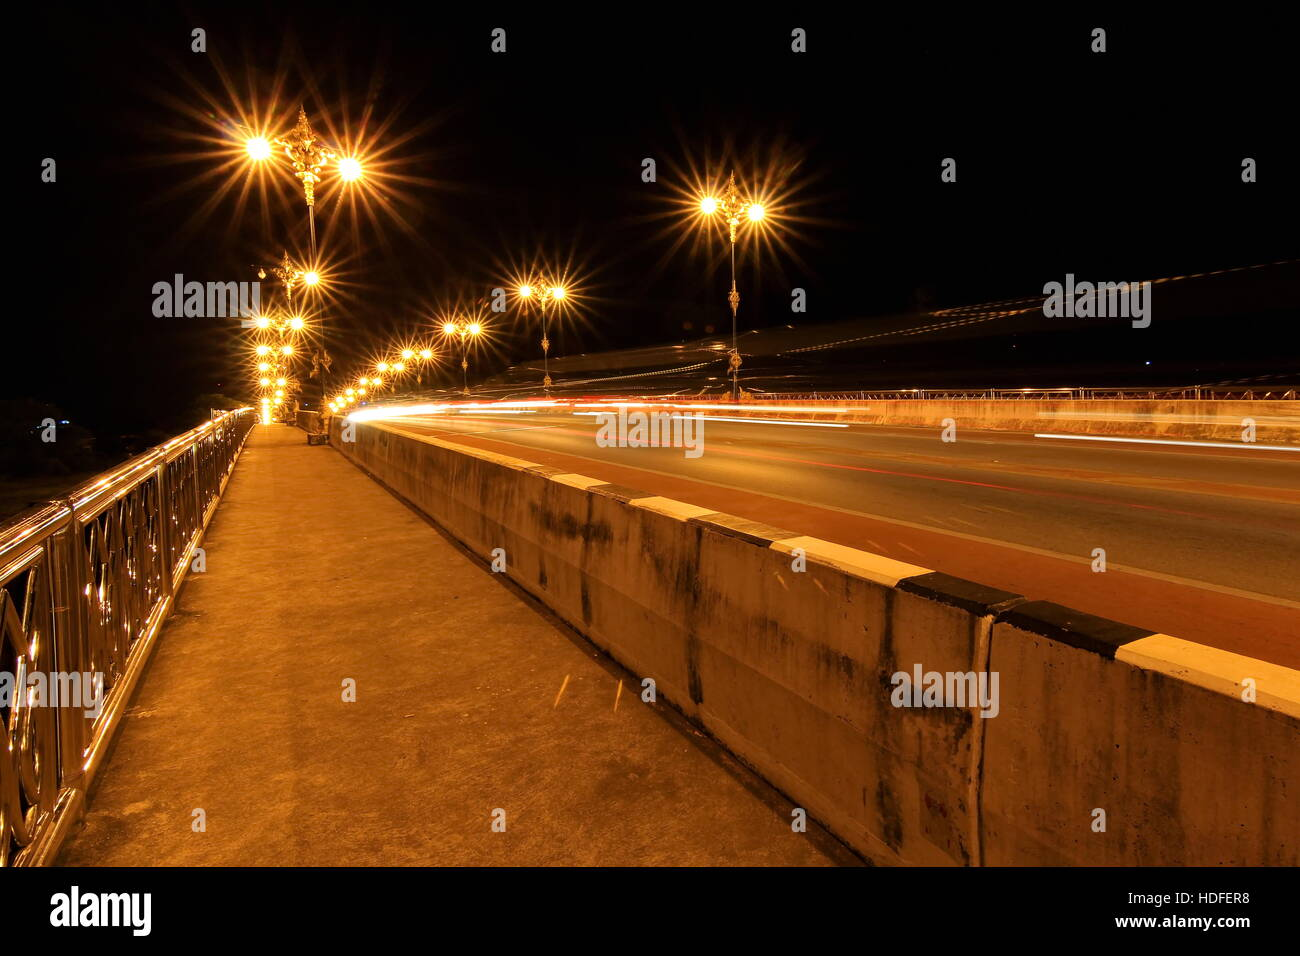 Nightscape of Phaya Mang Rai Bridge in Chiang Rai, Thailand - Stock Image